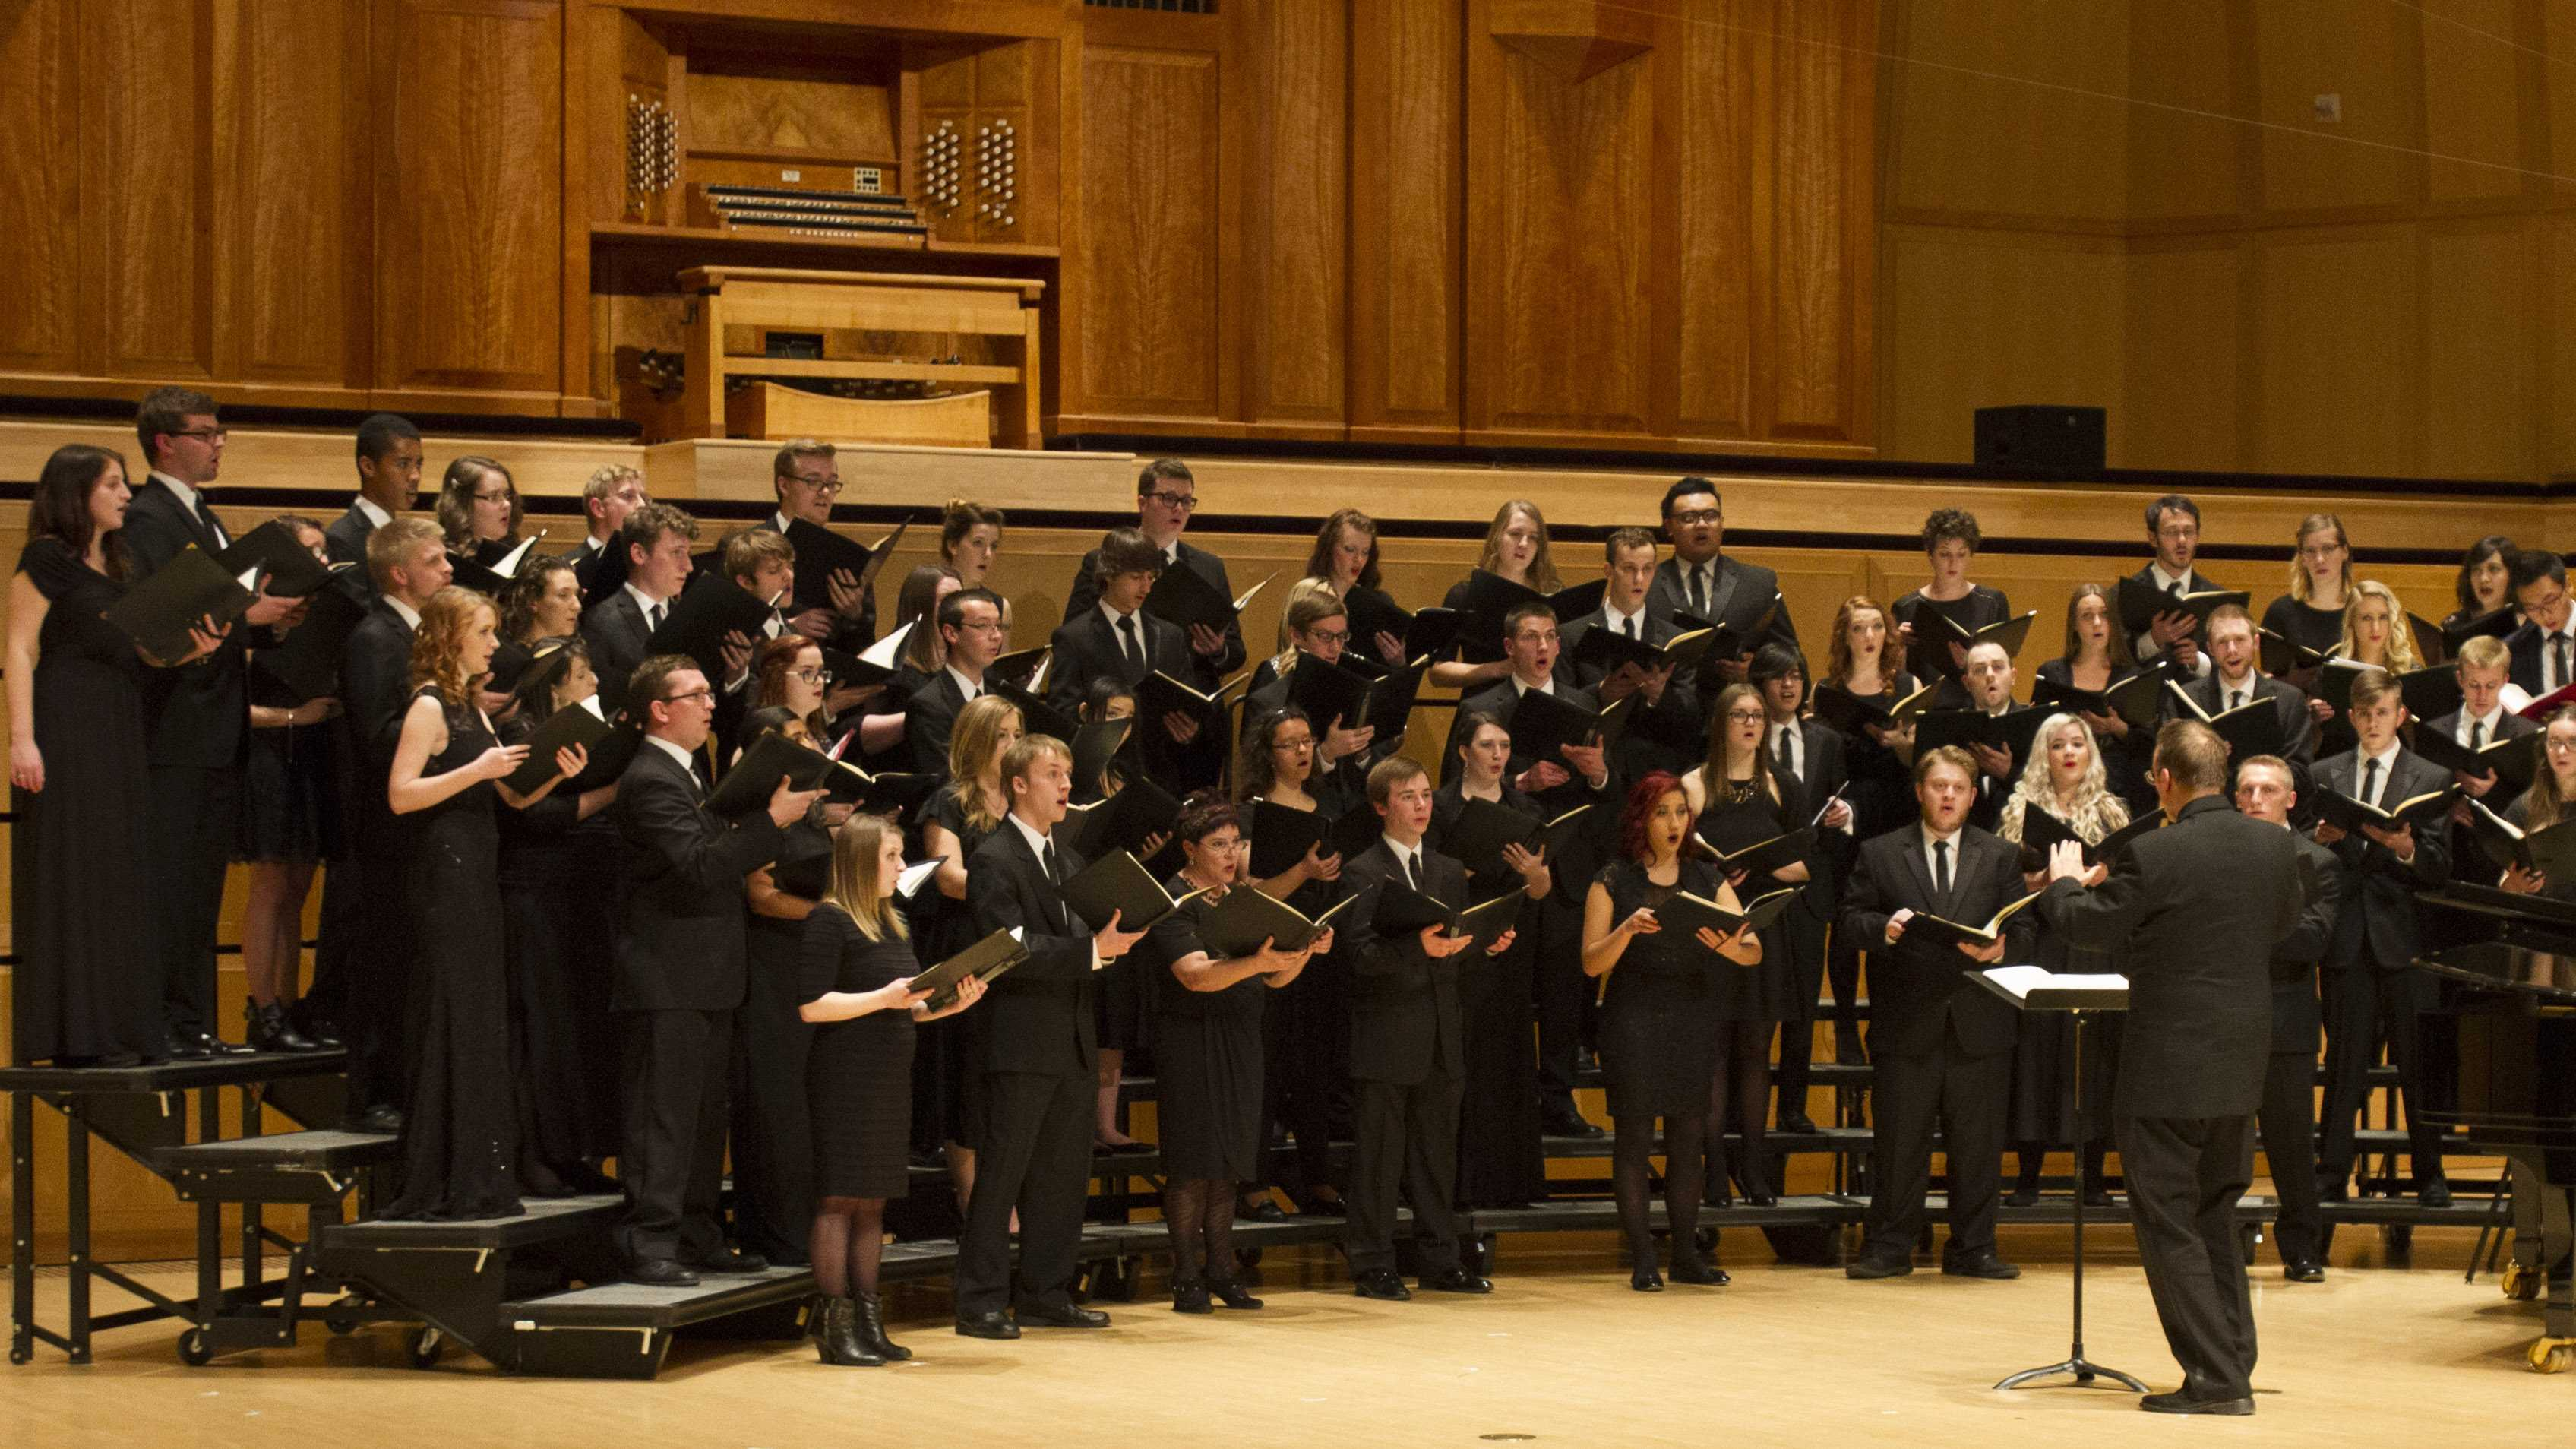 University combined choirs winter concert, Friday Feb. 19, 2016. (Mike Sheehan | Daily Utah Chronicle)